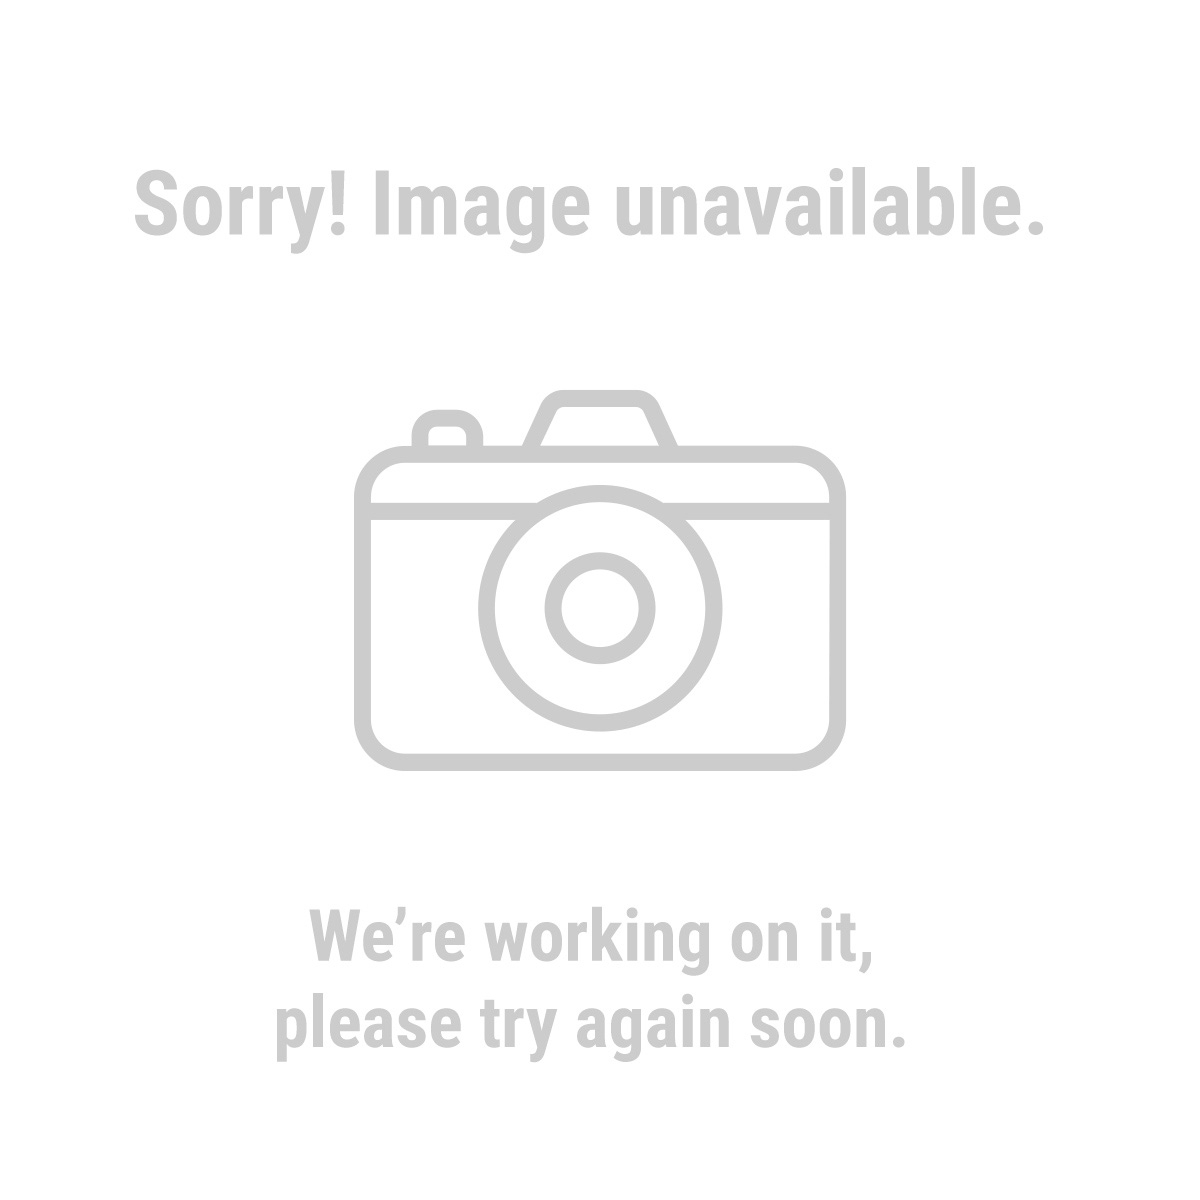 Gordon 60336 Heavy Duty Scissors